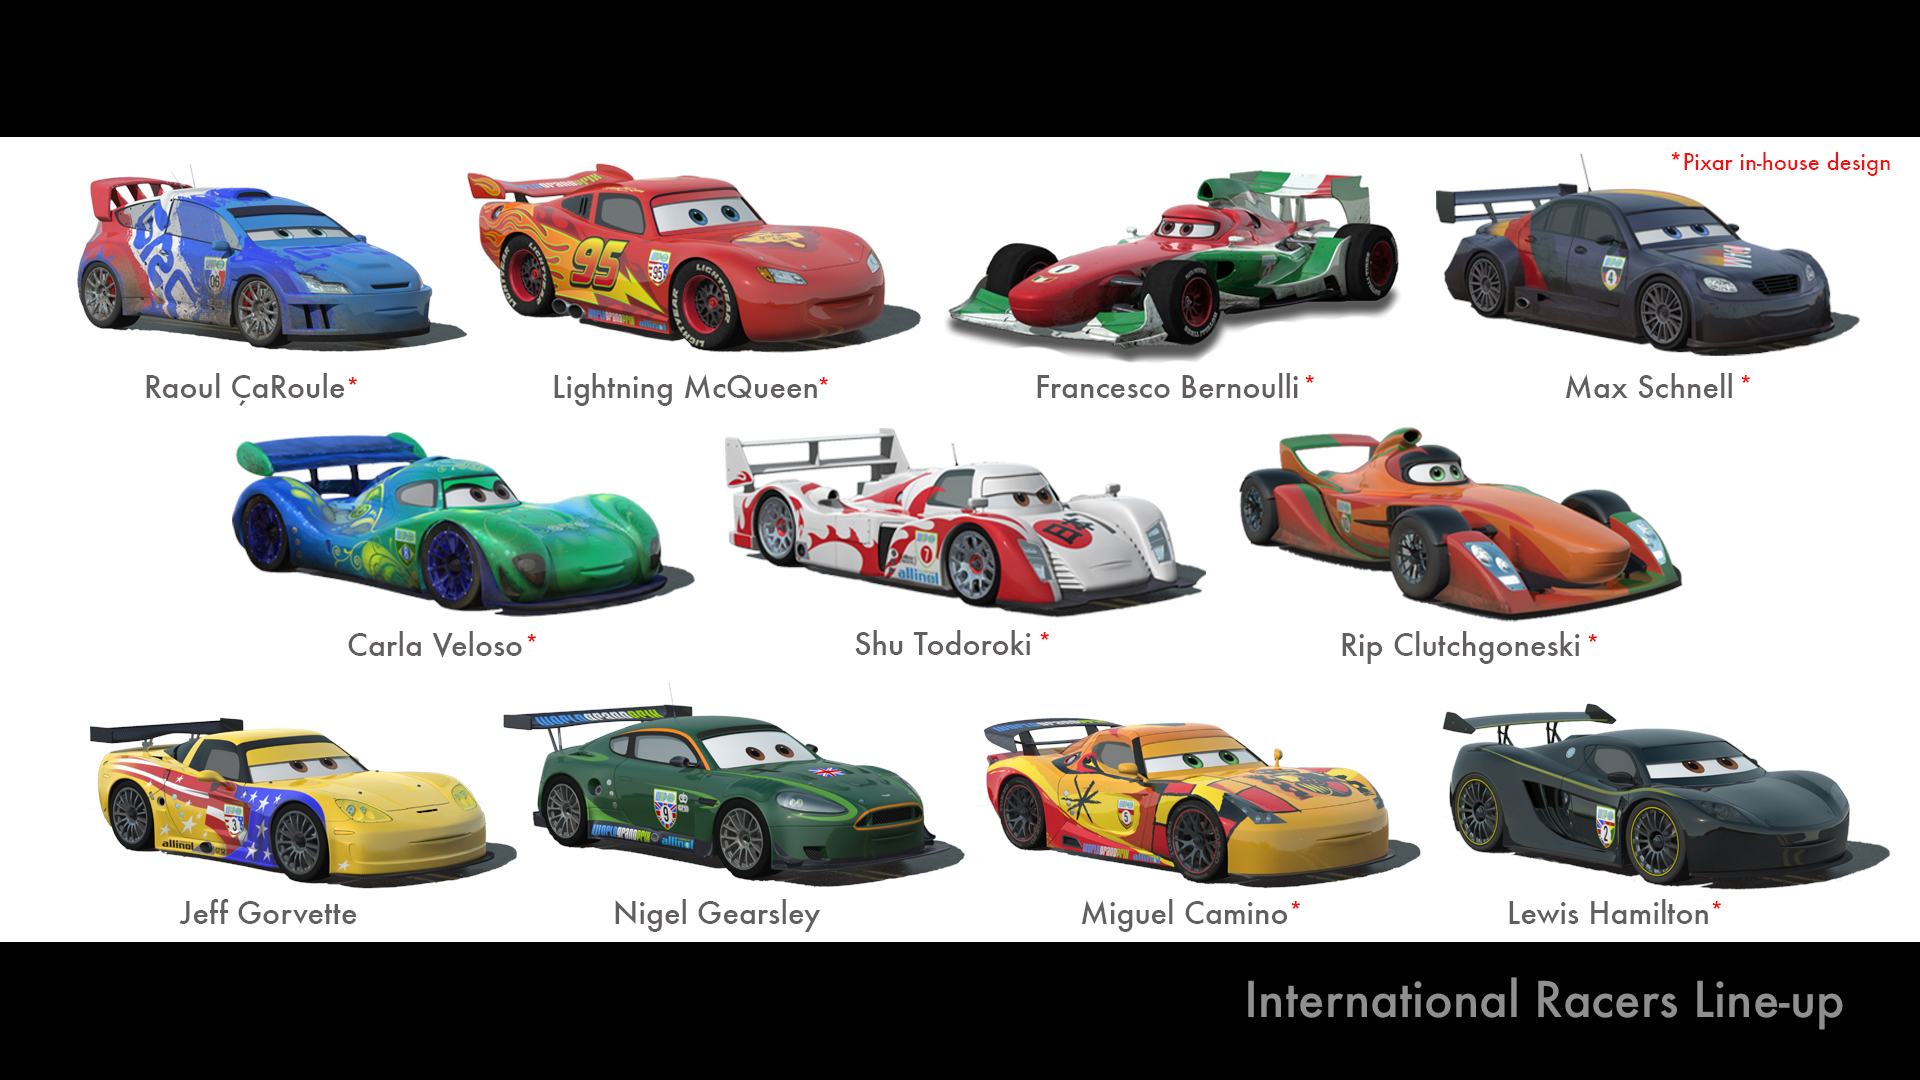 Disney cars 2 and real 1 1 car counterparts